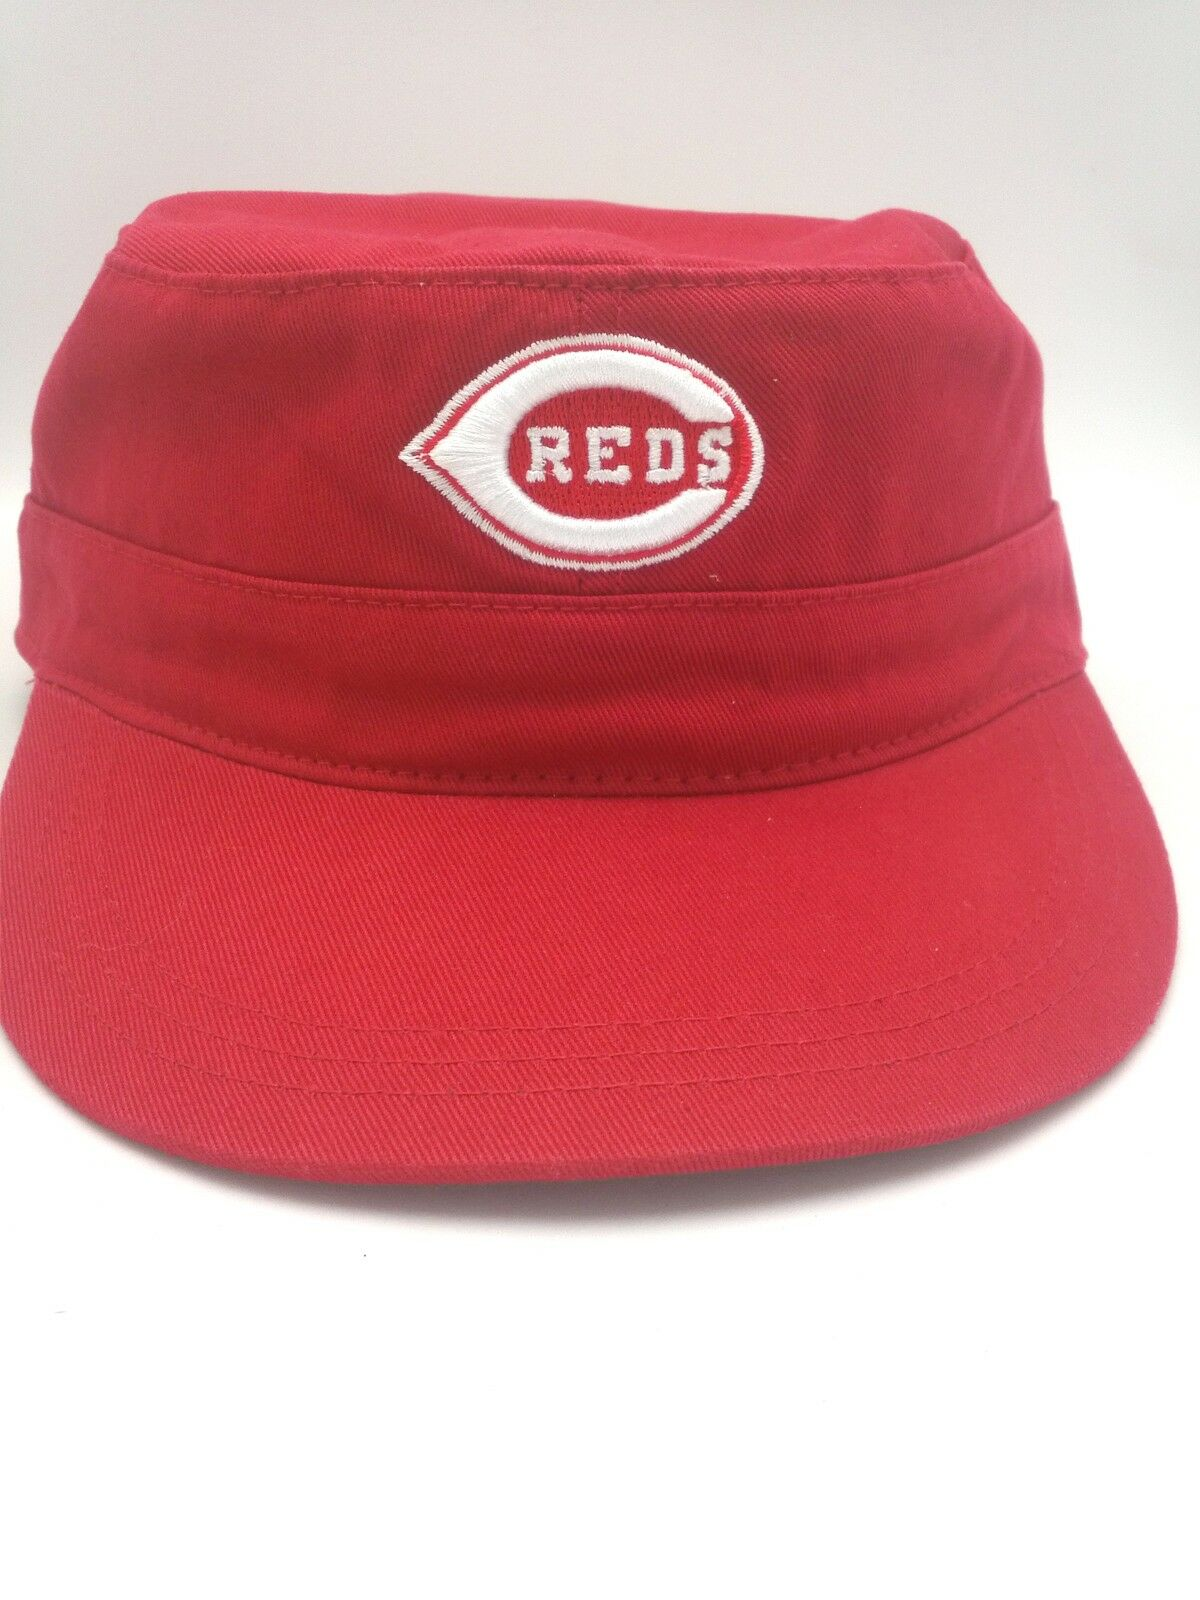 Cincinnati Reds Hat Cadet//Military//Castro Style Hat by American Needle